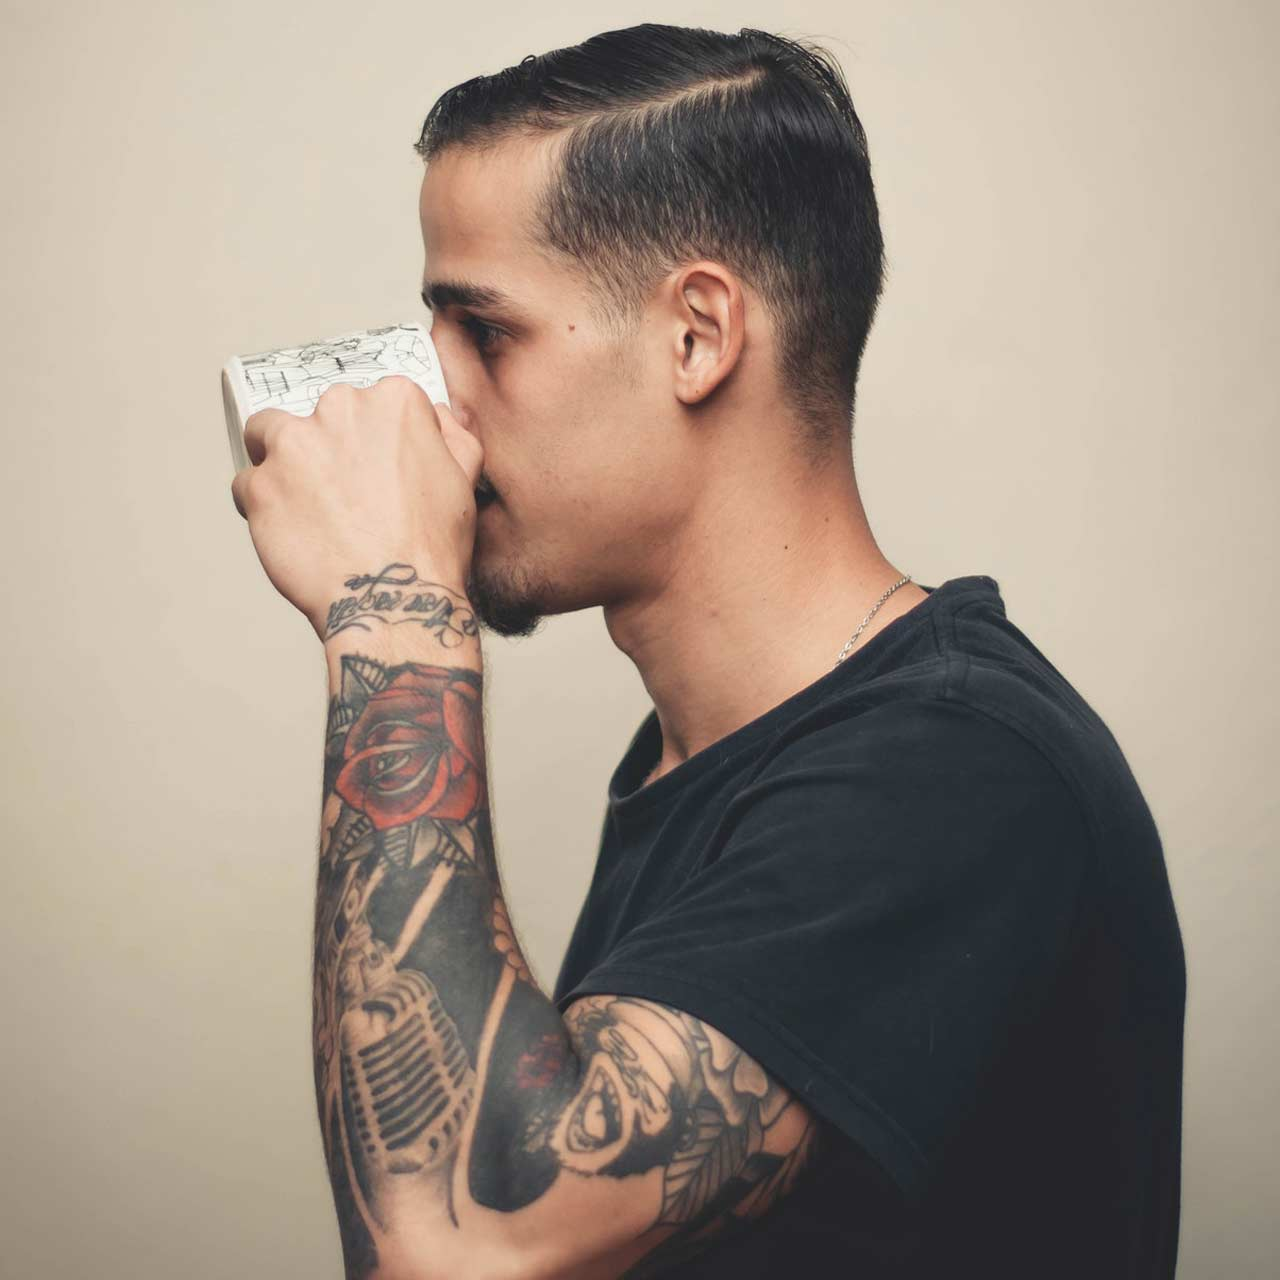 photo-of-man-with-tattoos-2738464